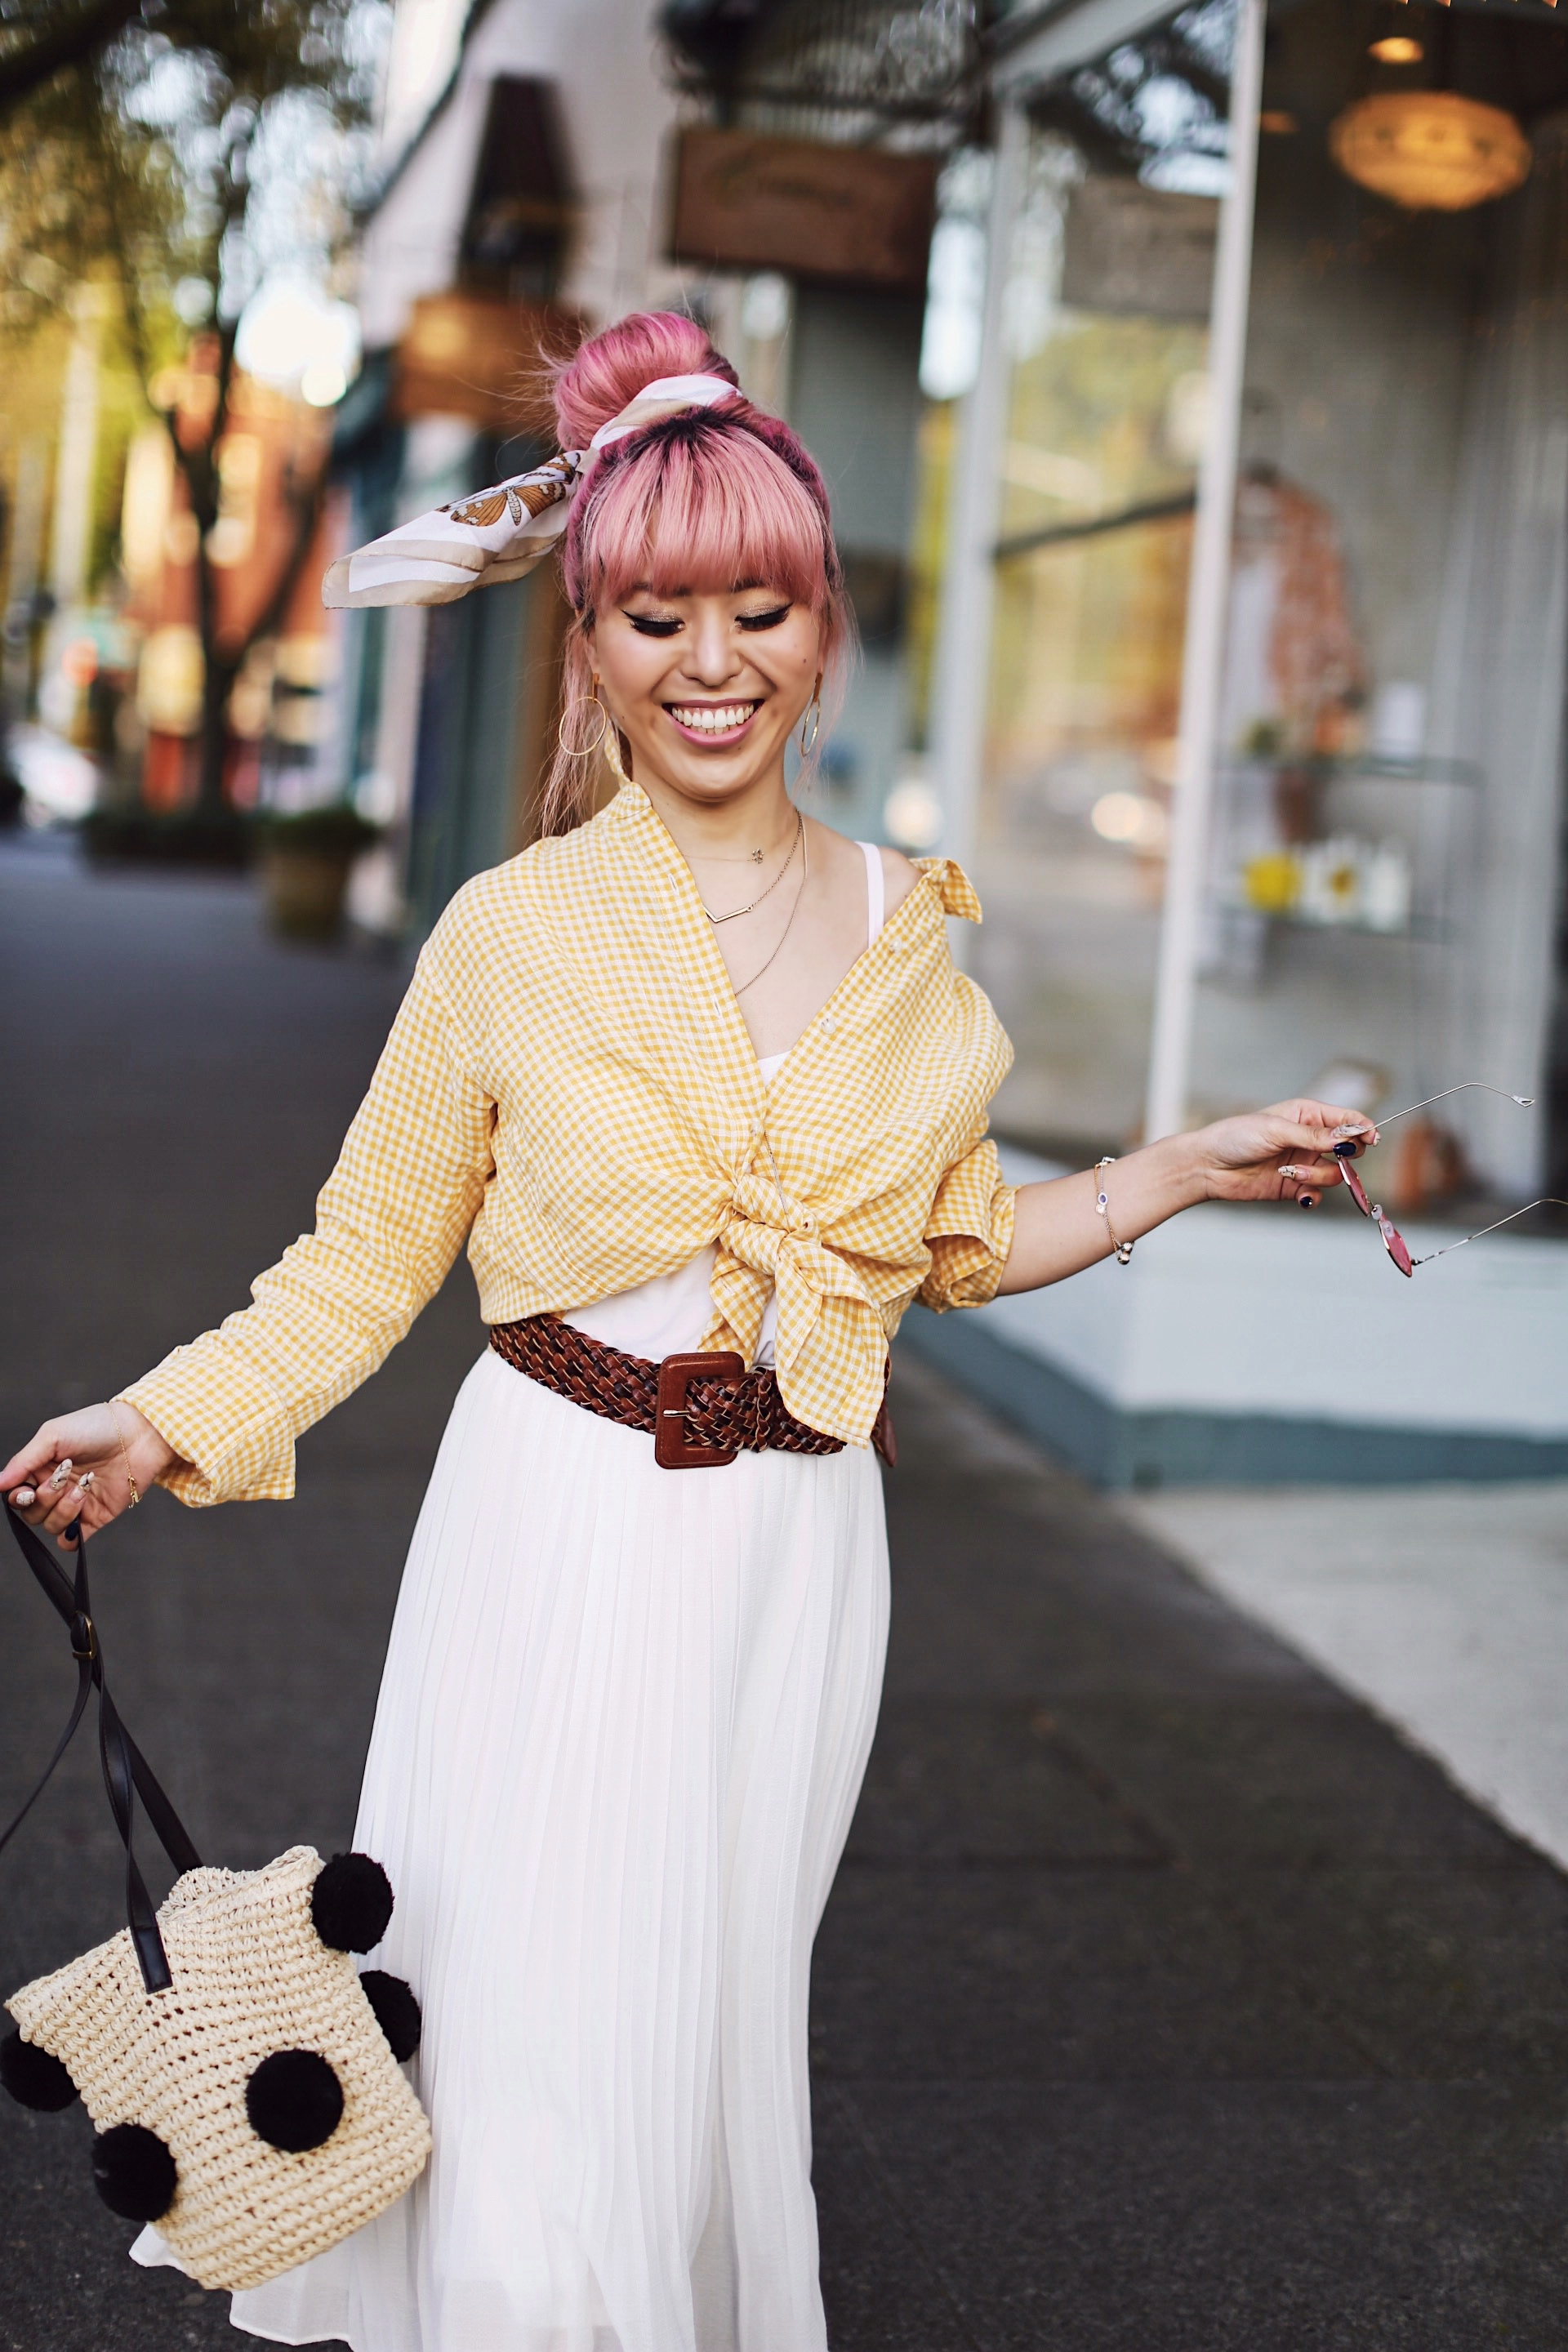 Uniqlo yellow Linen gingham shirt-Uniqlo White pleated chiffon midi skirt-Uniqlo Airism brat-pink tinted sunglasses ZERO UV-She in Pom pom Straw bucket bag-Vintage scarf bun hair style-Steve Madden Belt-Jane and the shoe denim oxford platforms-Aika's Love Closet-seattle fashion style blogger-Japanese-pink hair-smiling-spring fashion 12